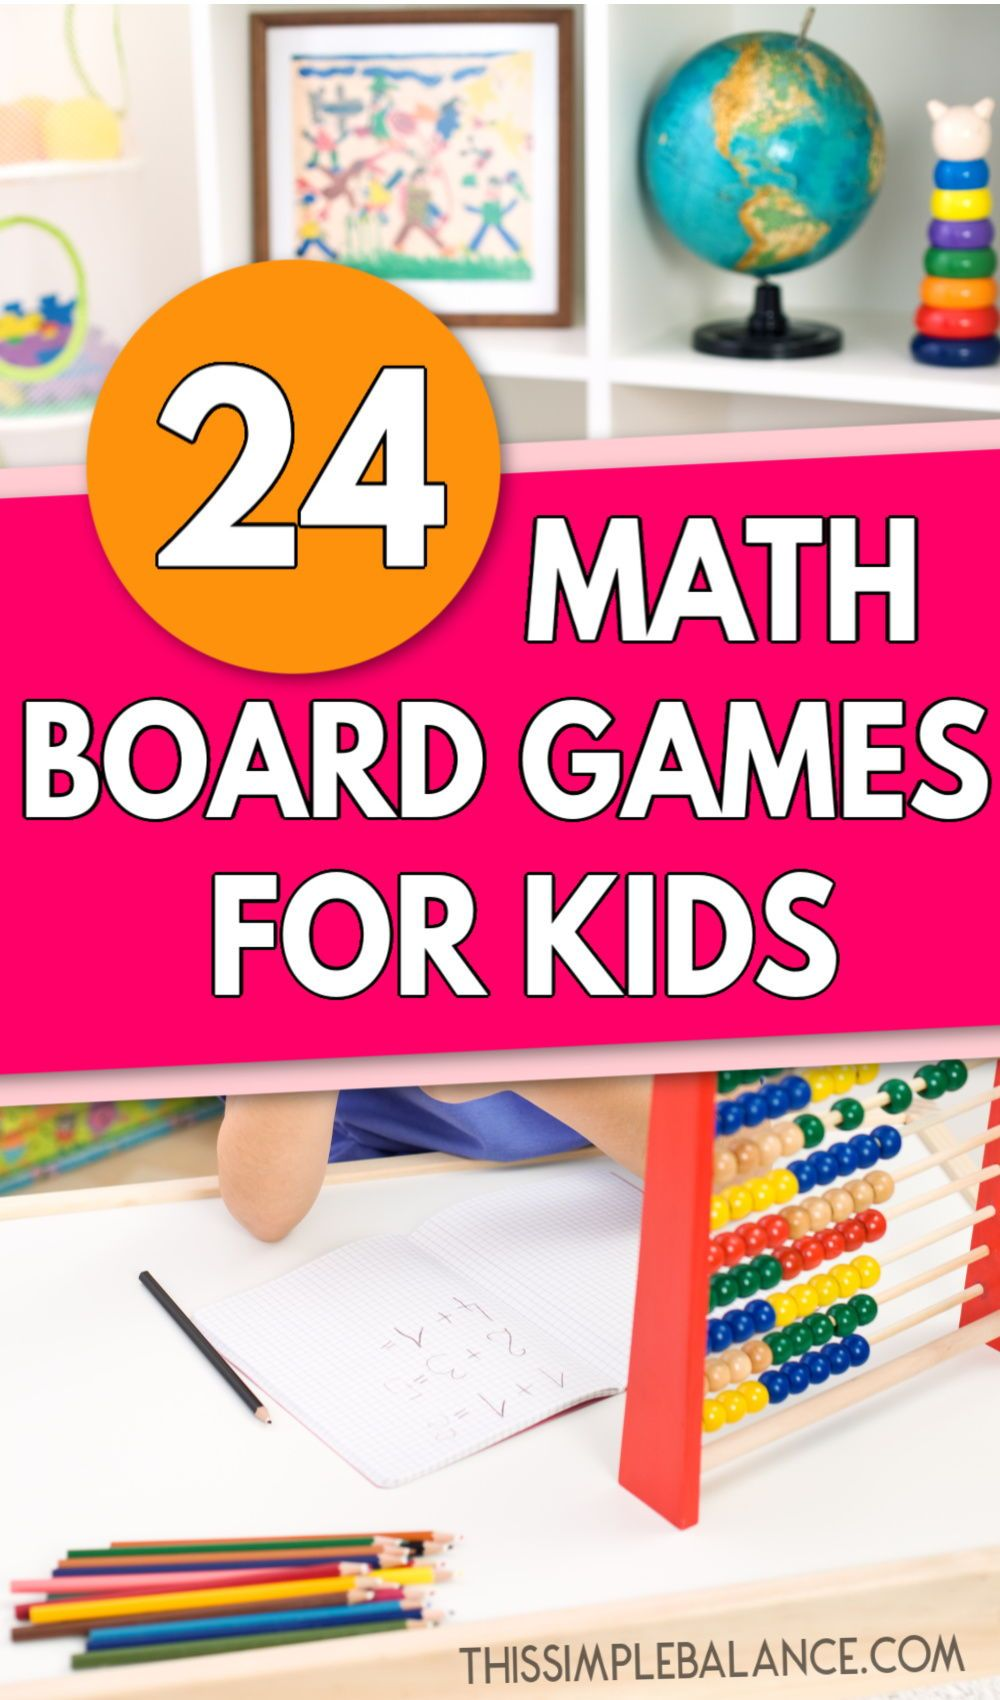 24 Math Board Games for Kids of All Ages (math can be fun